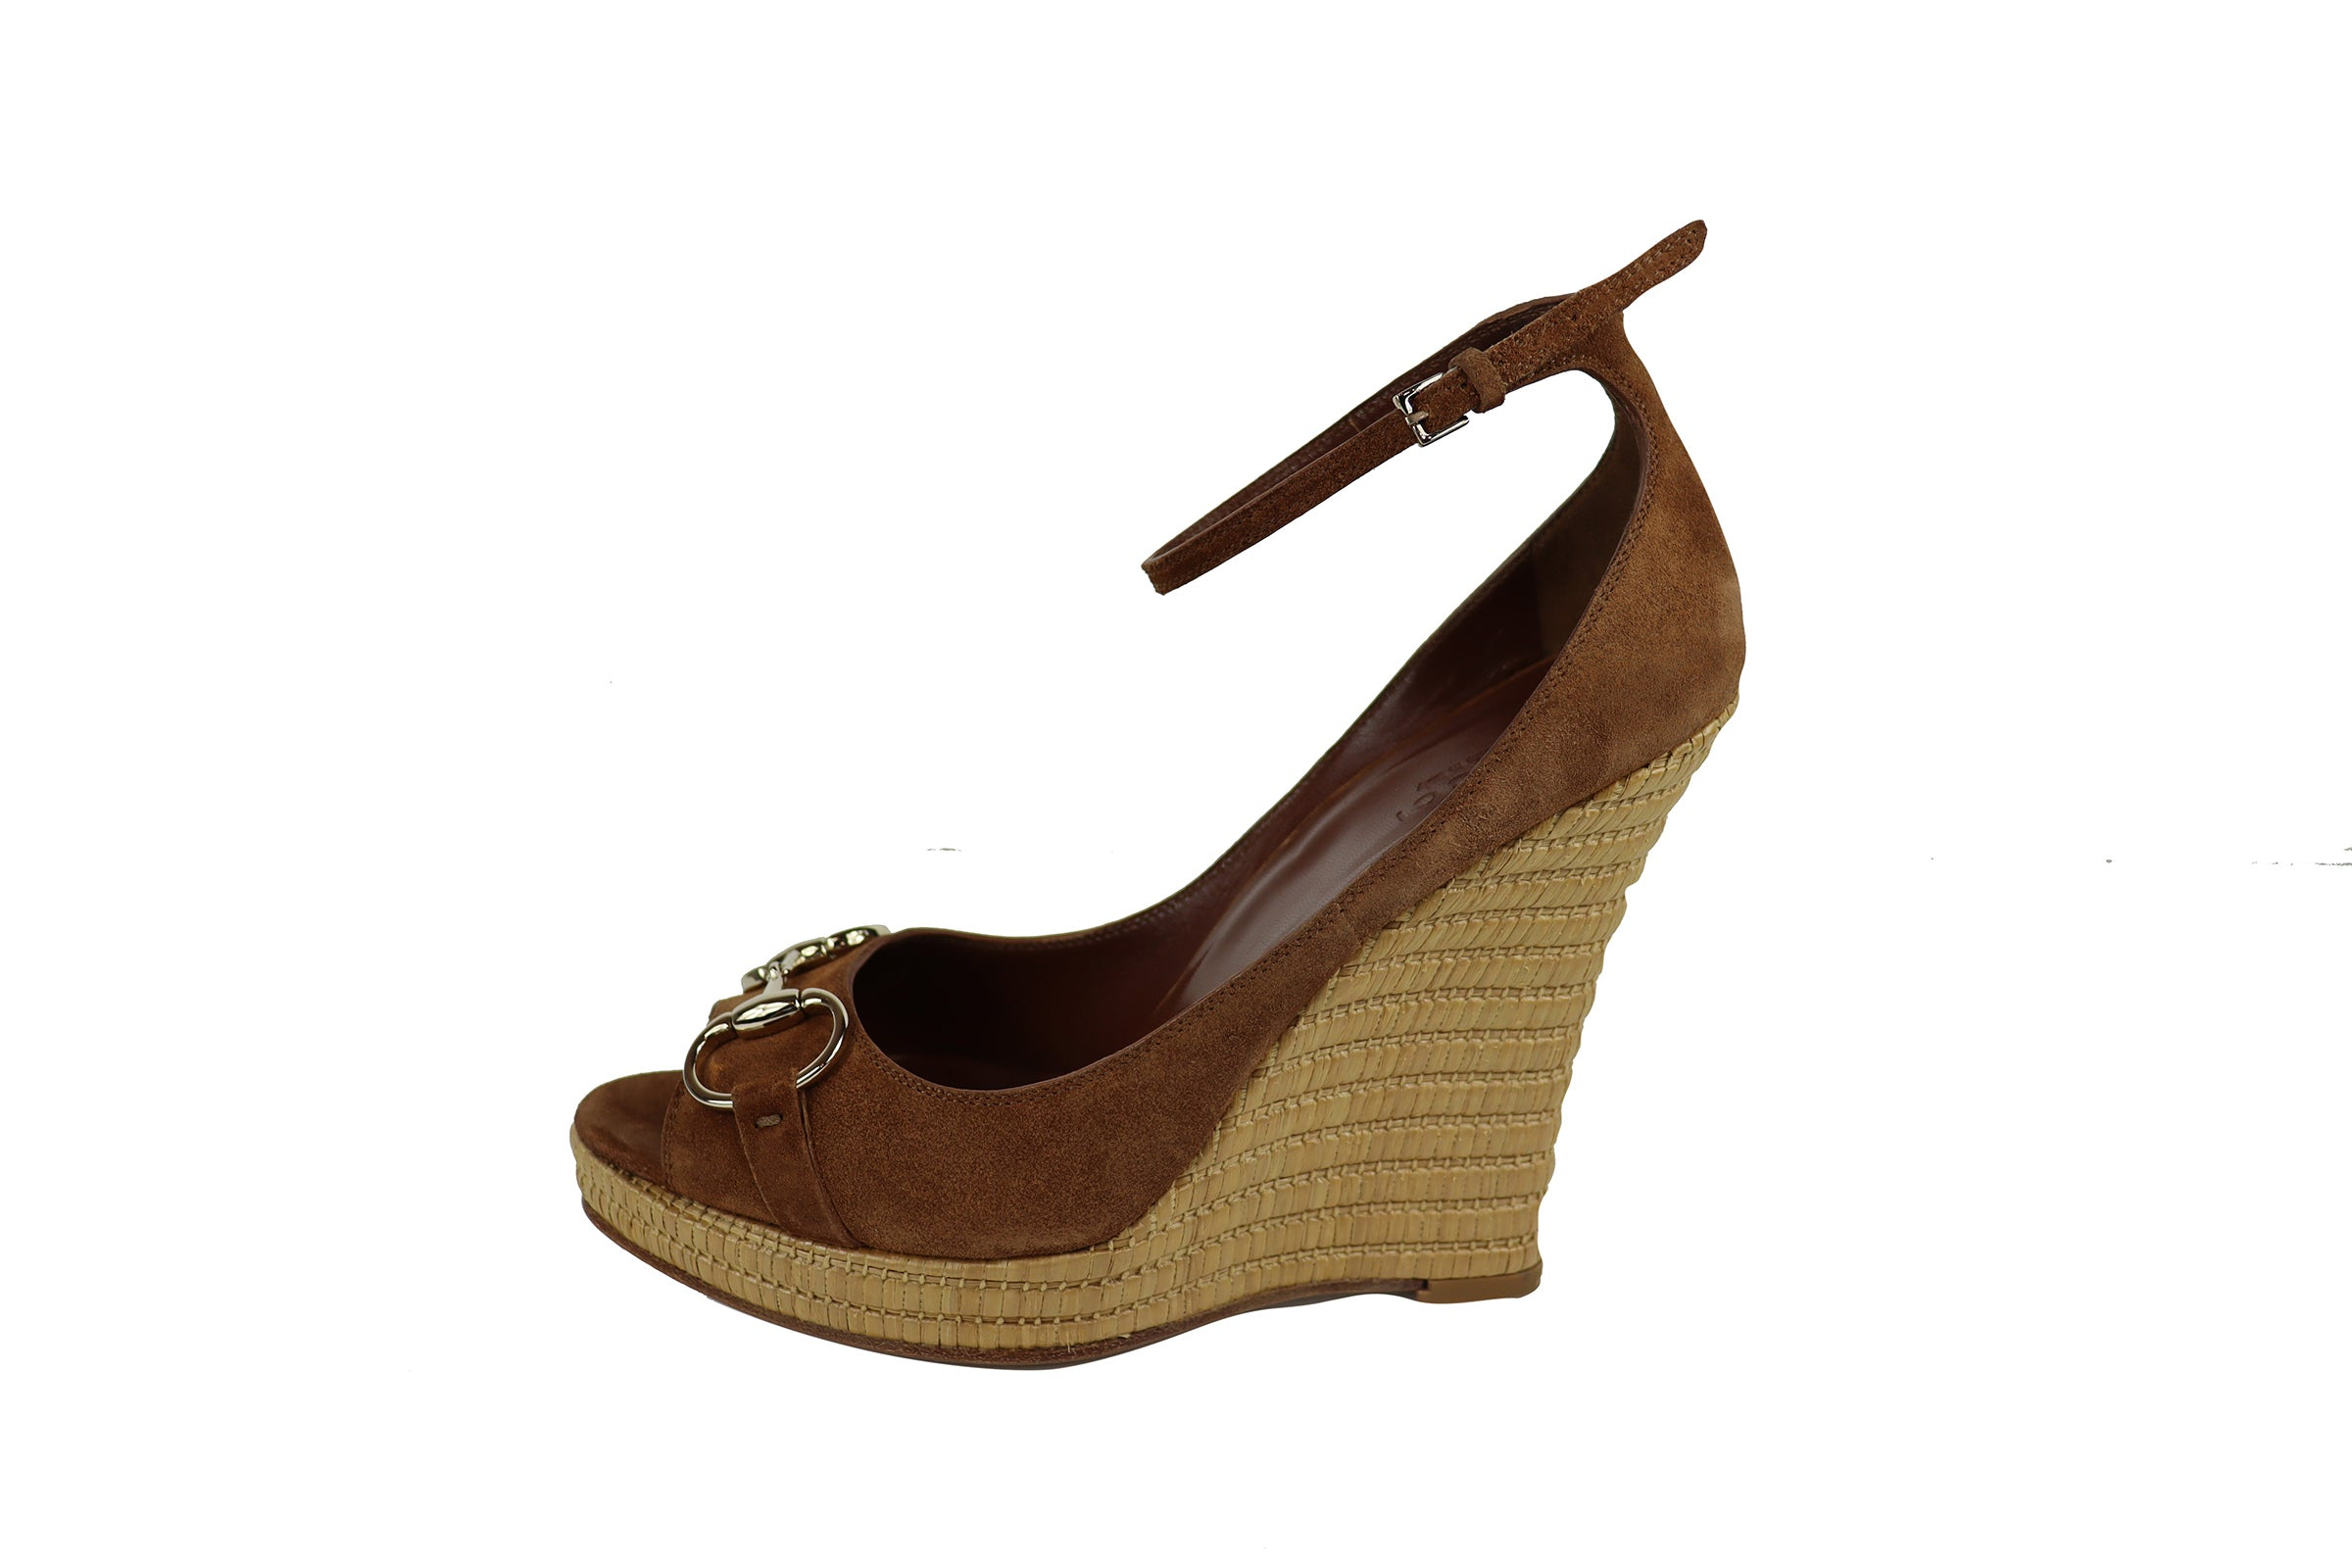 Gucci Wedge Brown Suede Sandals with Silver Horsebit Detail Size 37,5 (EU)